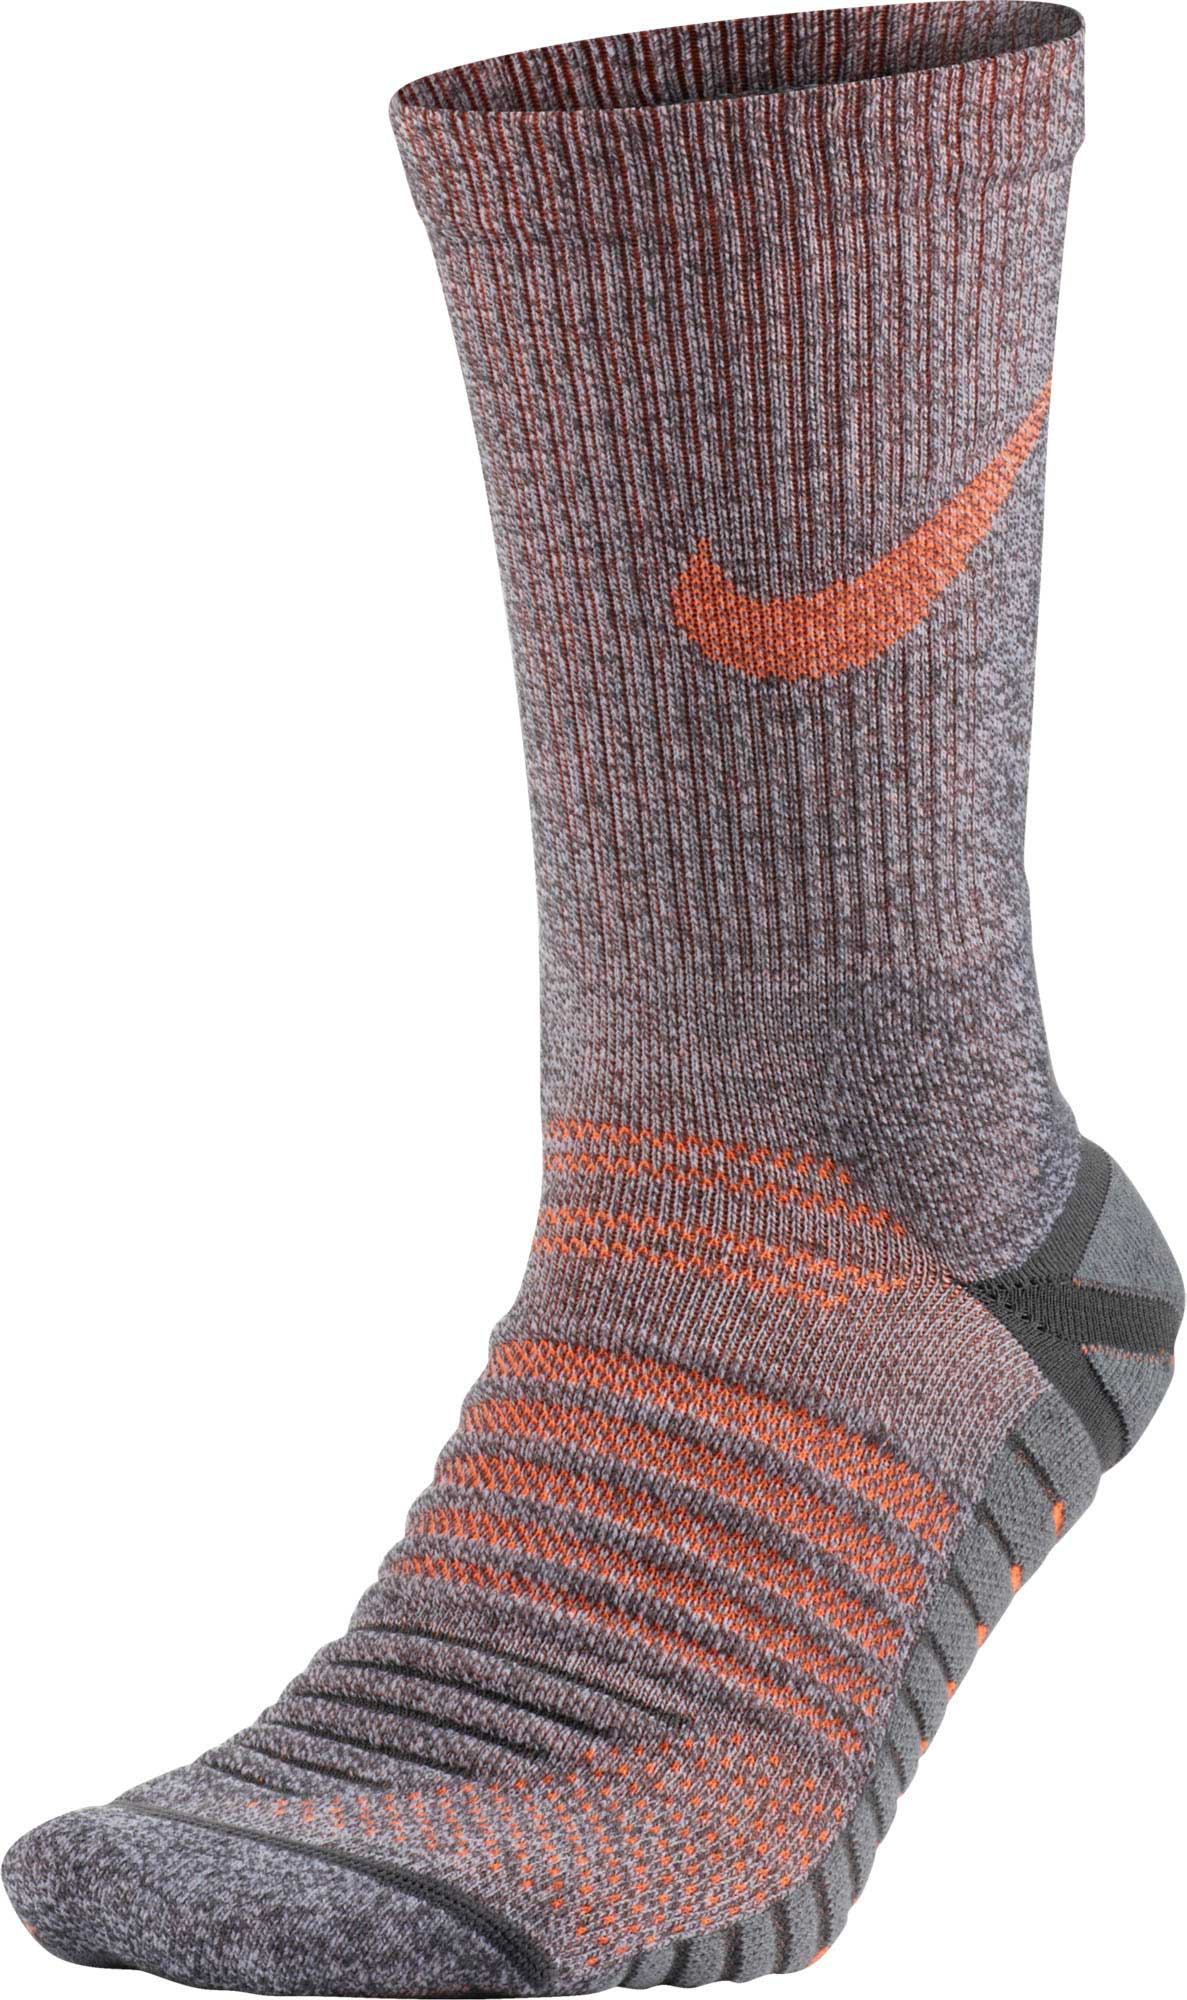 e0a9940d6 Find every shop in the world selling 22.49 nike usa soccer sock ...